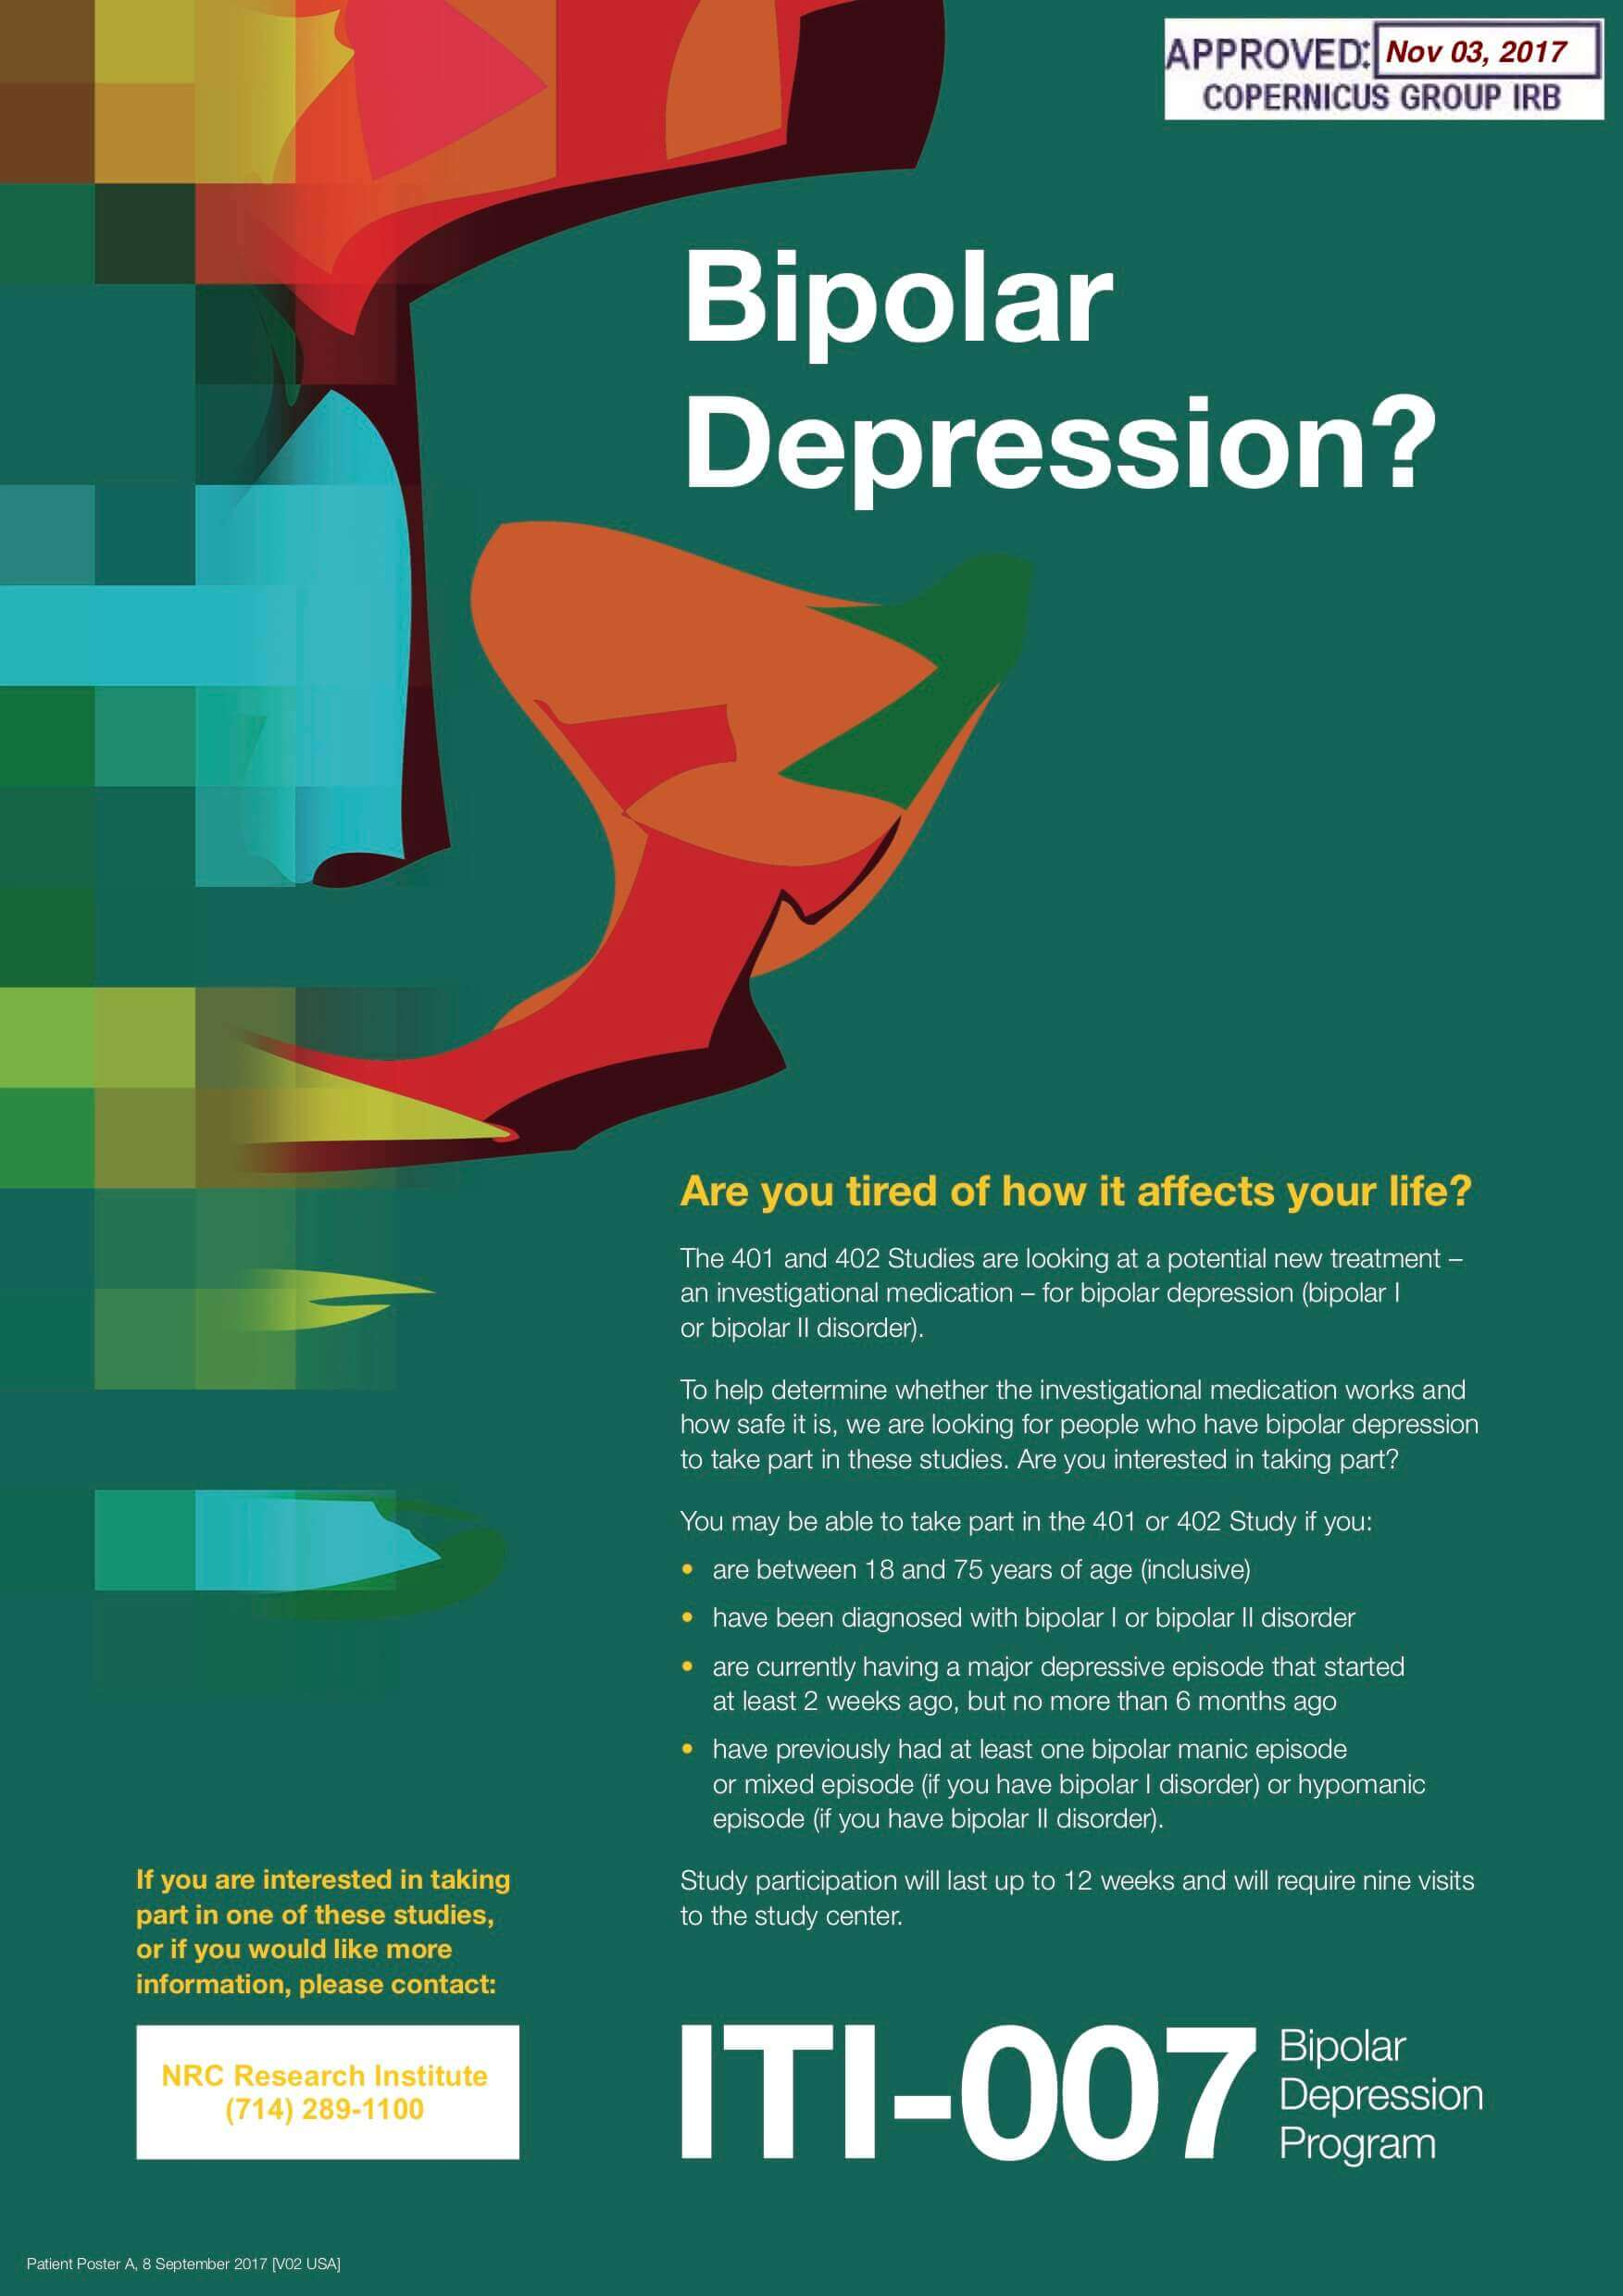 Bipolar-Depression-clinical-trials